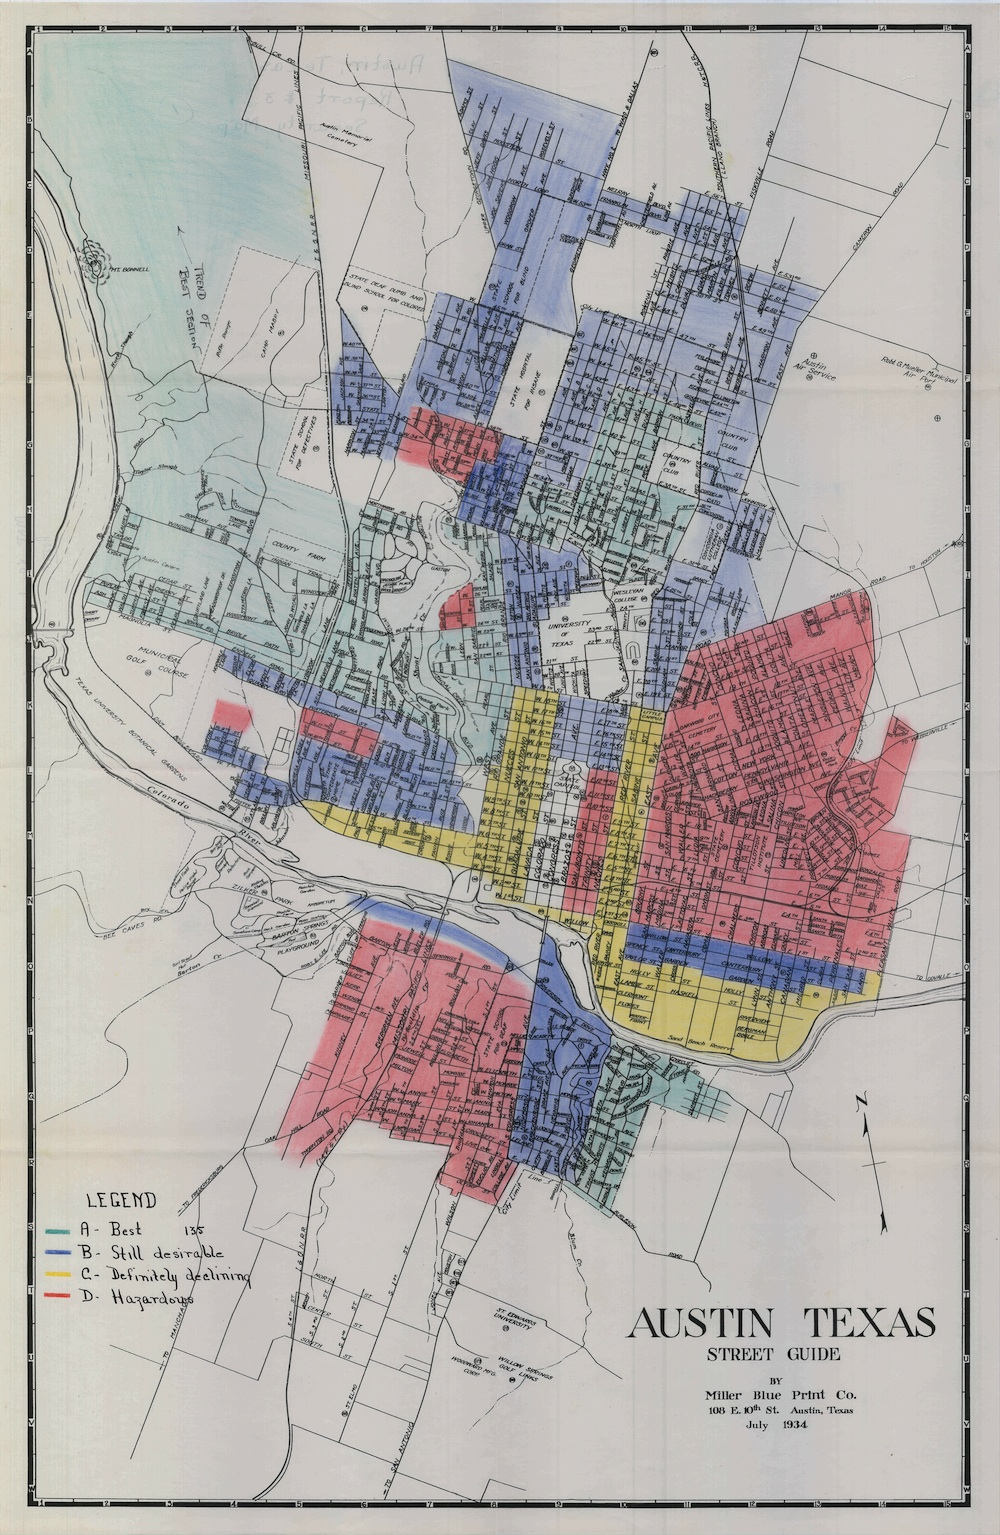 Texas Cities Historical Maps - Perry-Castañeda Map ...